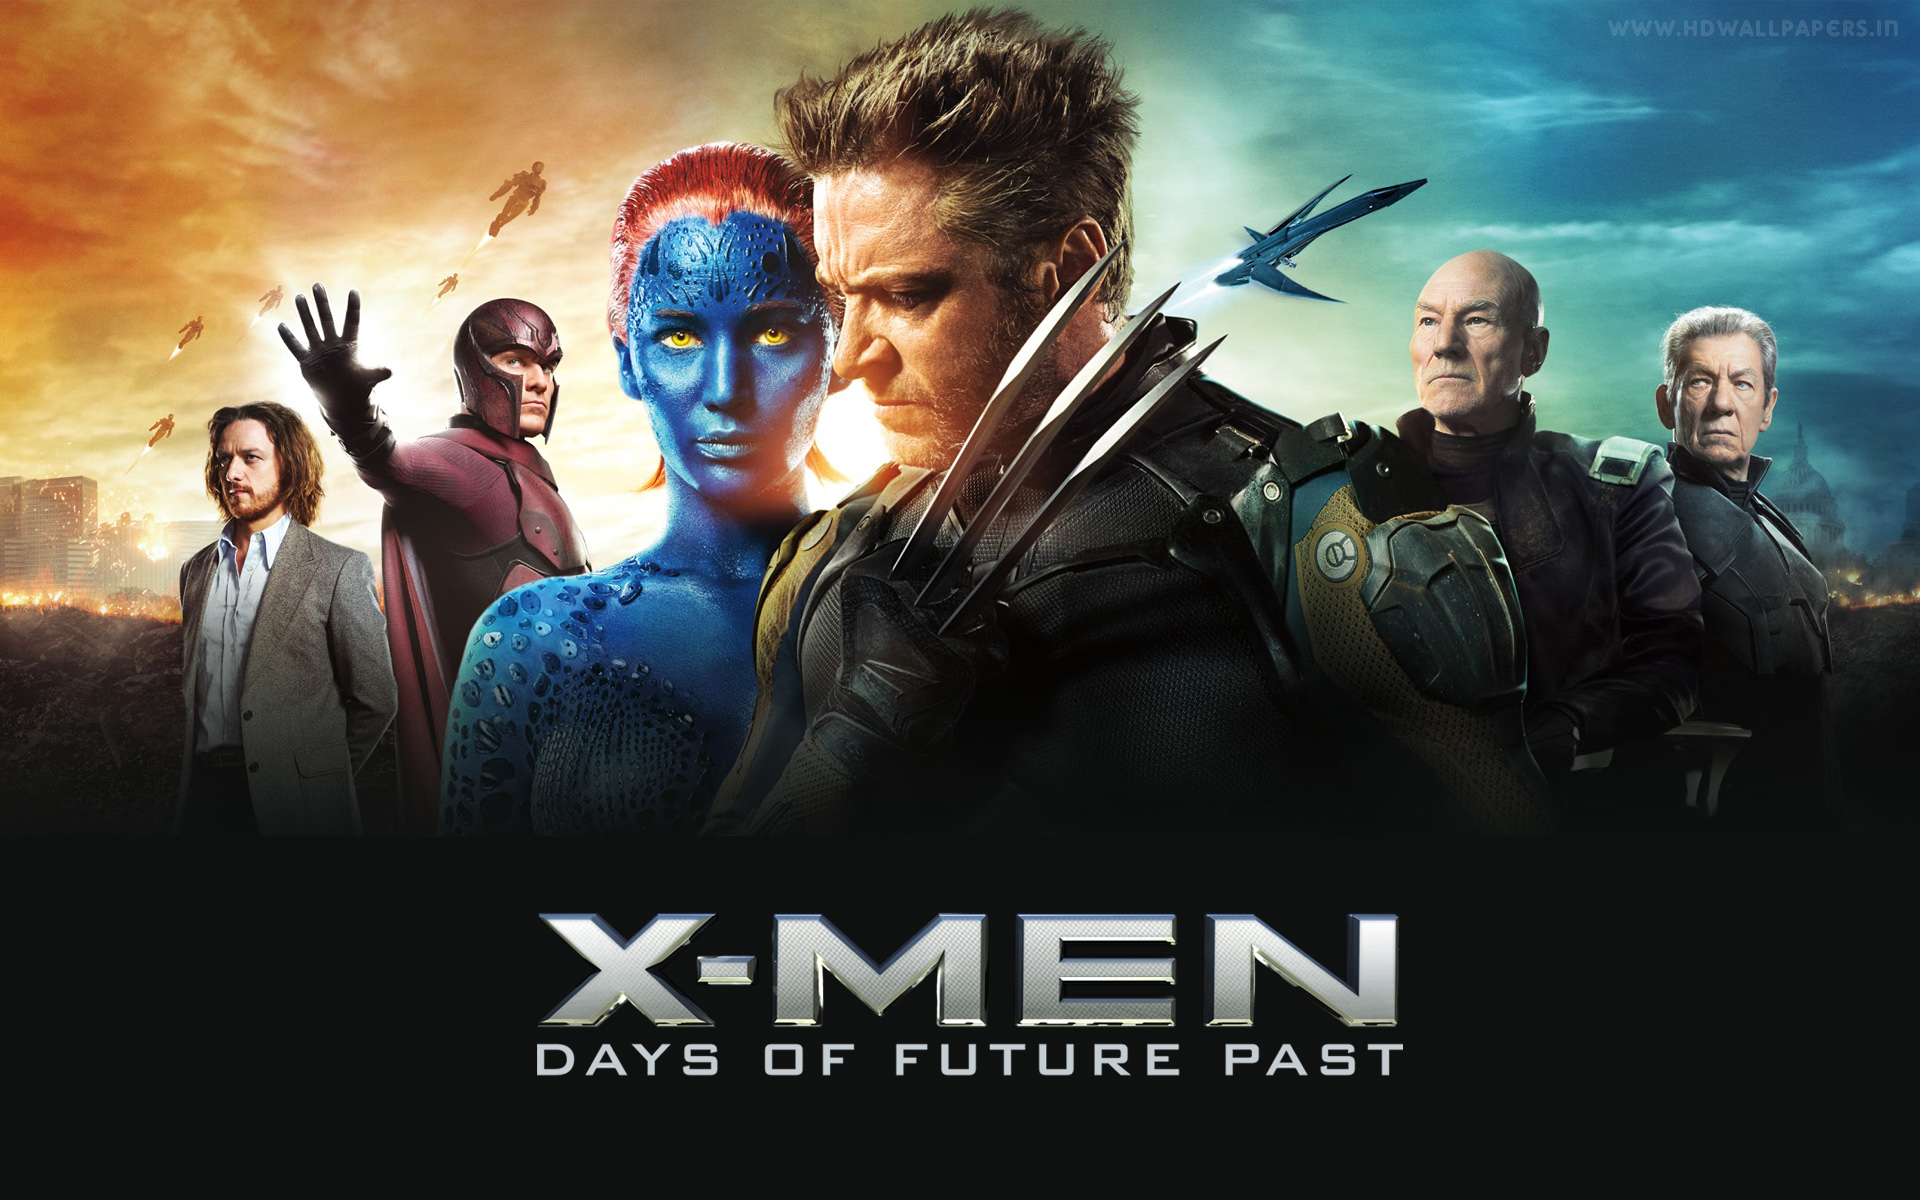 Photo Gallery: X-Men: Days of Future Past - Reel Life With Jane